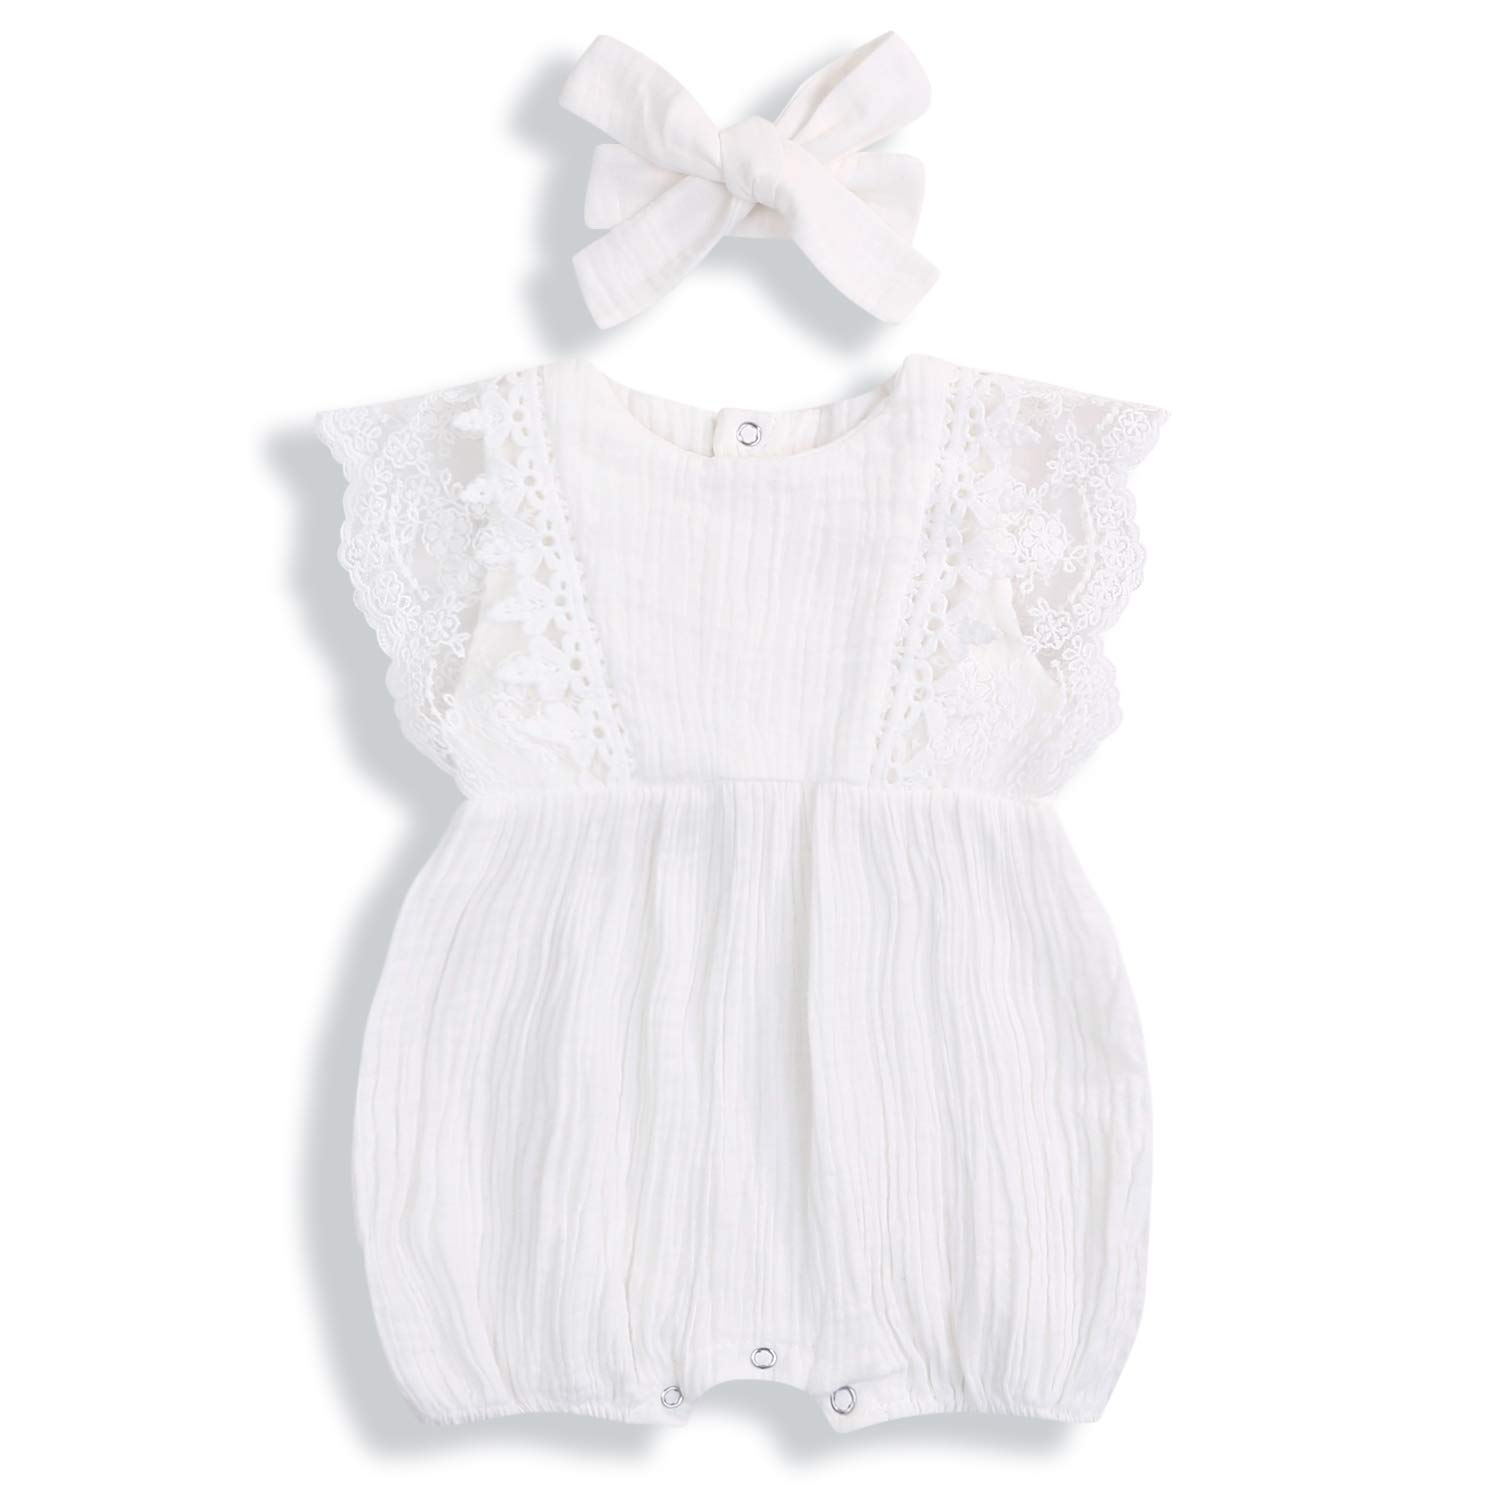 KCSLLCA Baby Girls Ruffle Romper Solid Color Bodysuit Clothes